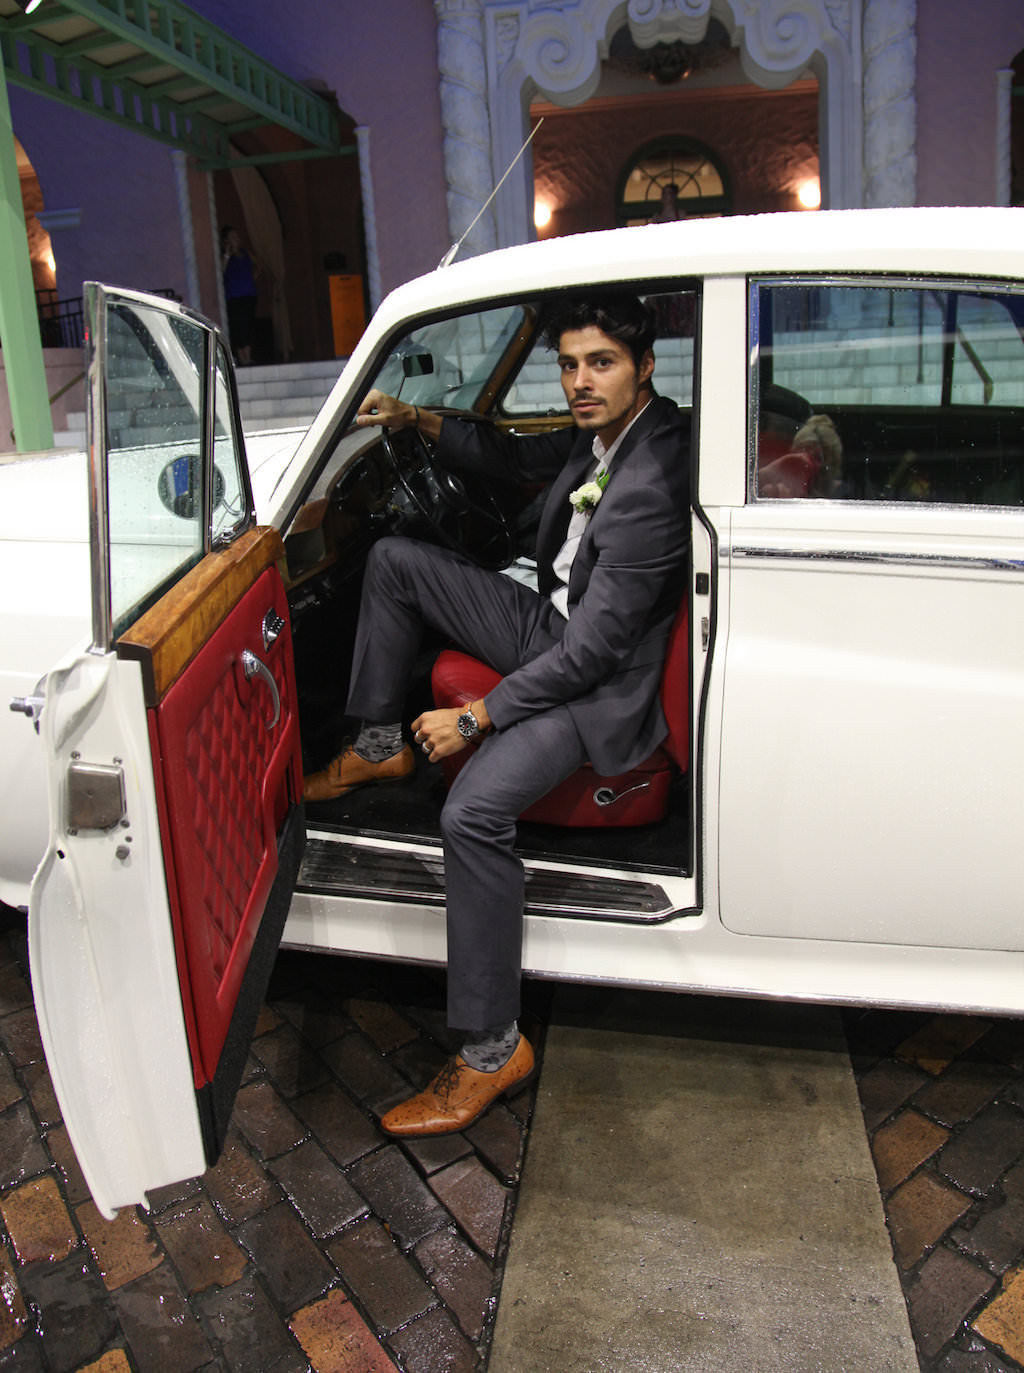 Groom Wedding Exit Portrait in Classic Vintage Car, Wearing Gray Suit with Tan Leather Shoes and WHite Floral Boutonniere